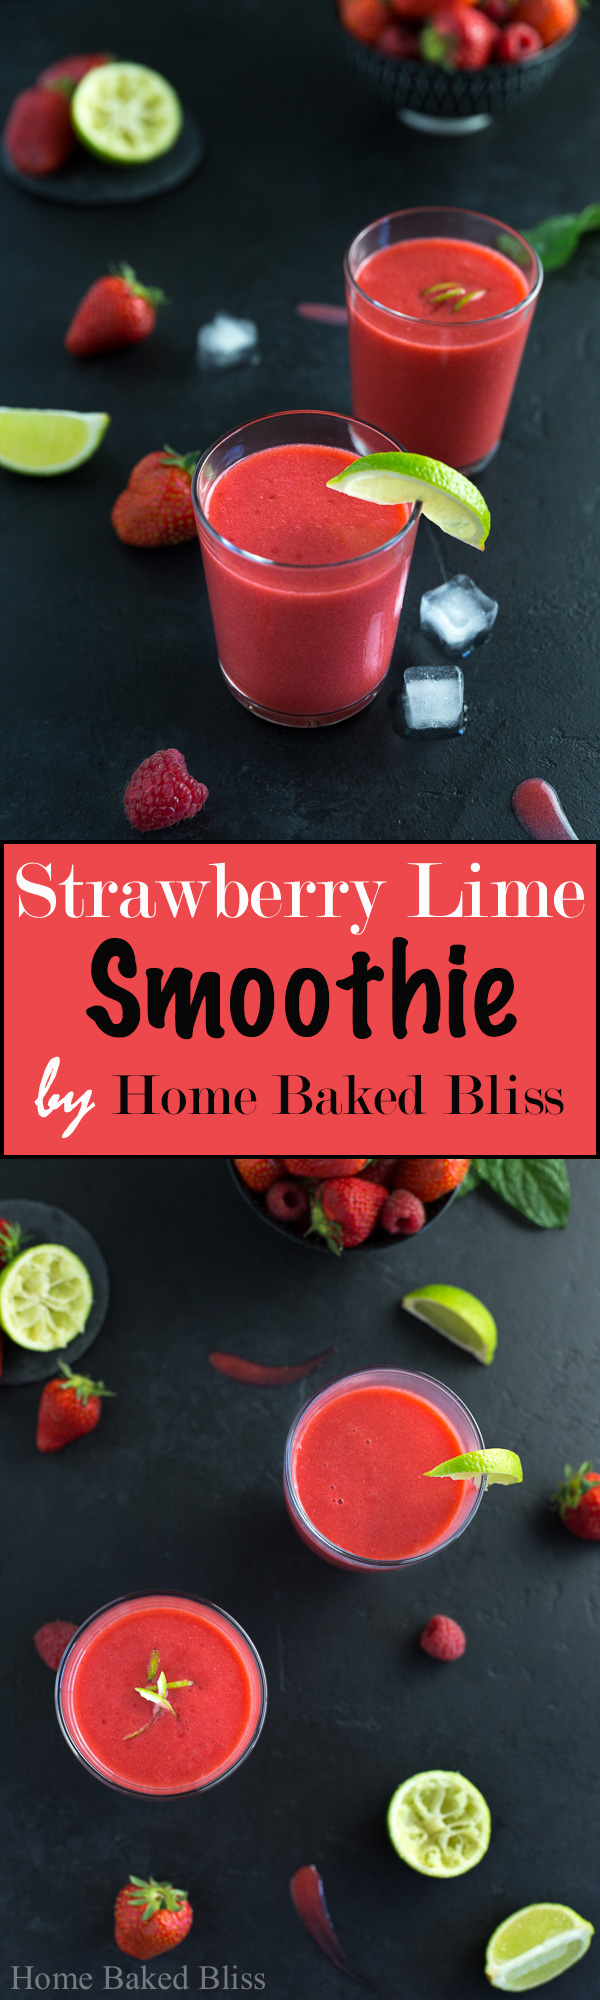 A refreshing sweet and sour strawberry lime smoothie. Perfect as breakfast on the go!